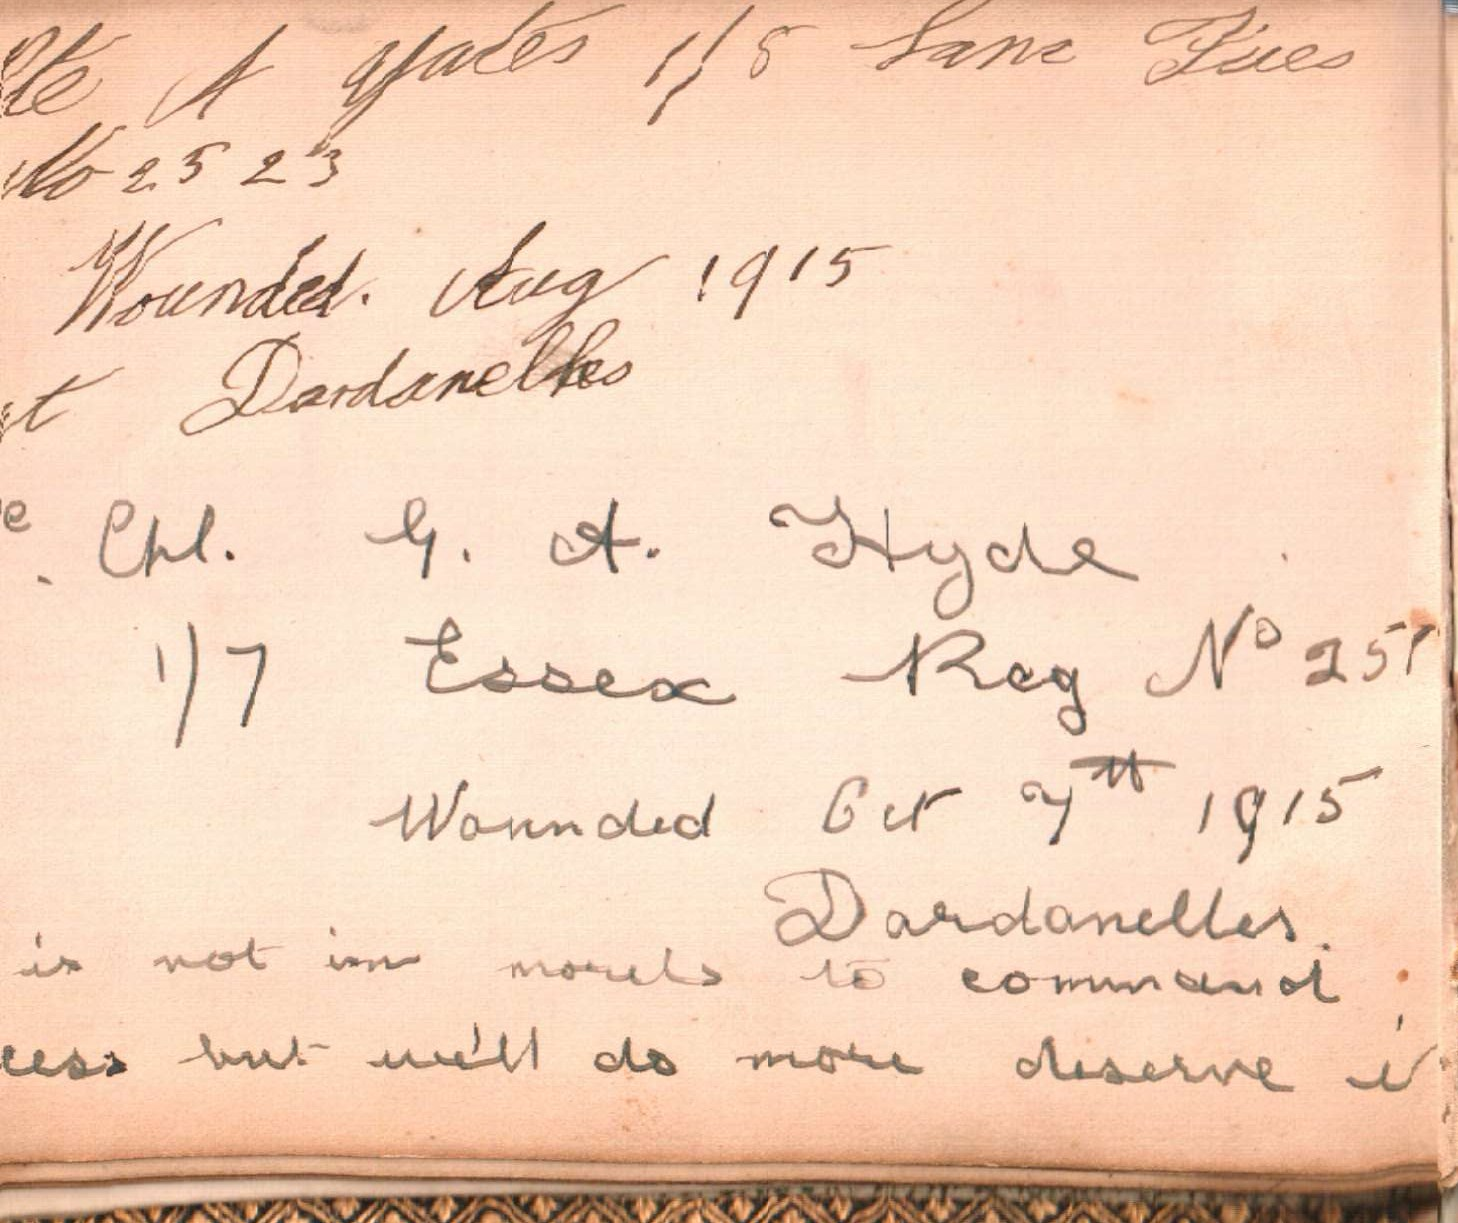 example of journal entry from canadian soldier ww1